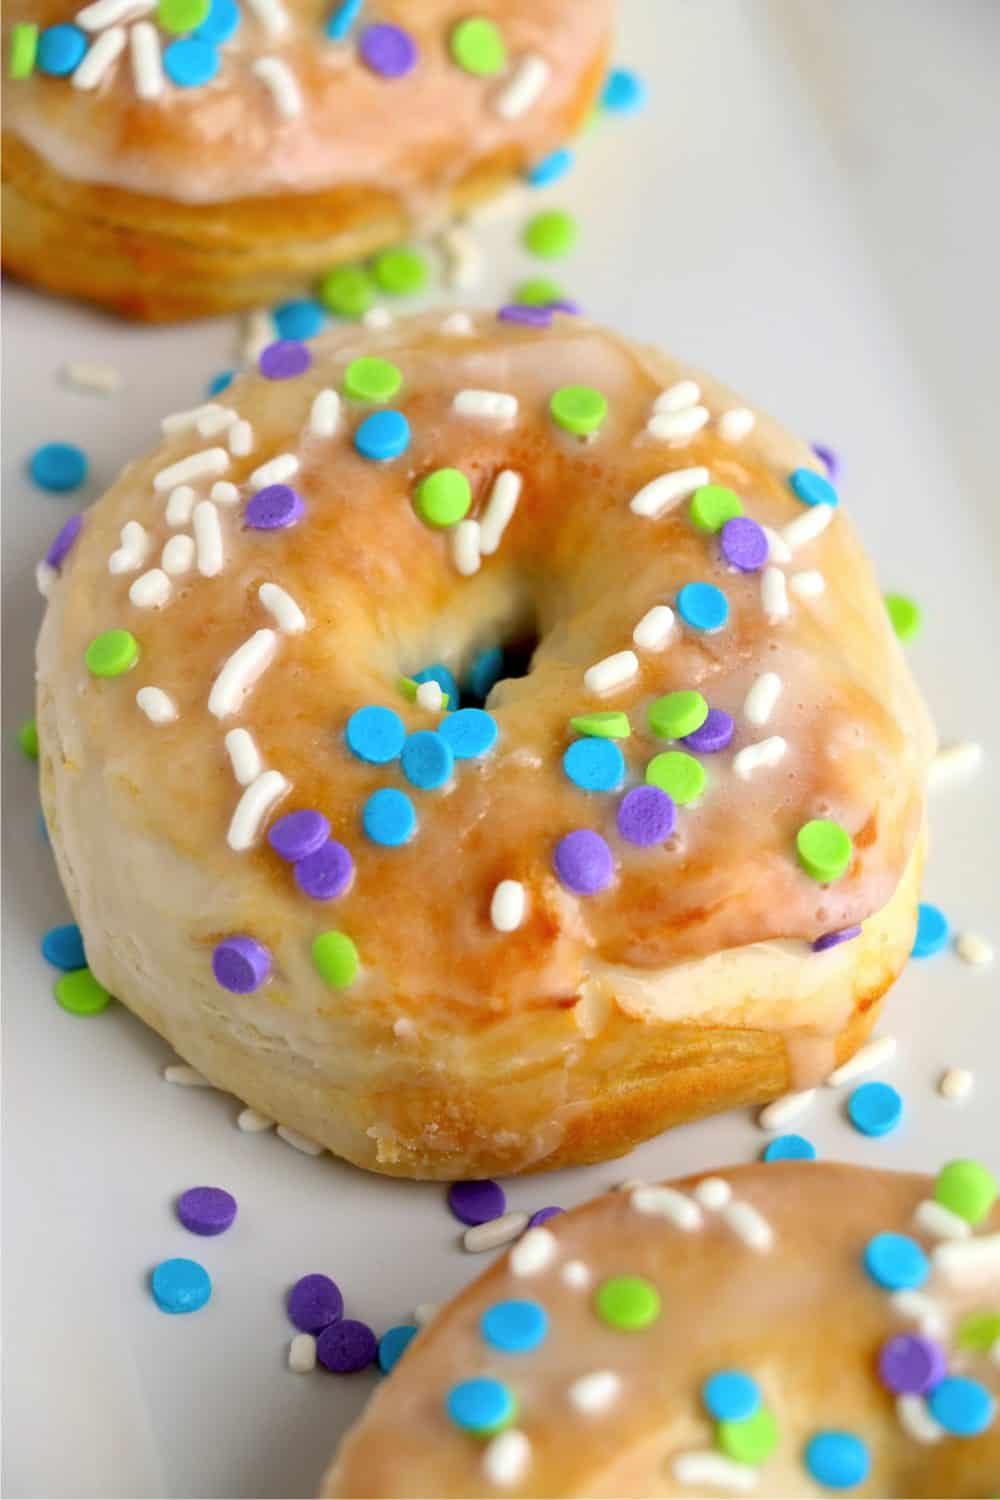 a close-up shot of a biscuit donut with icing and sprinkles